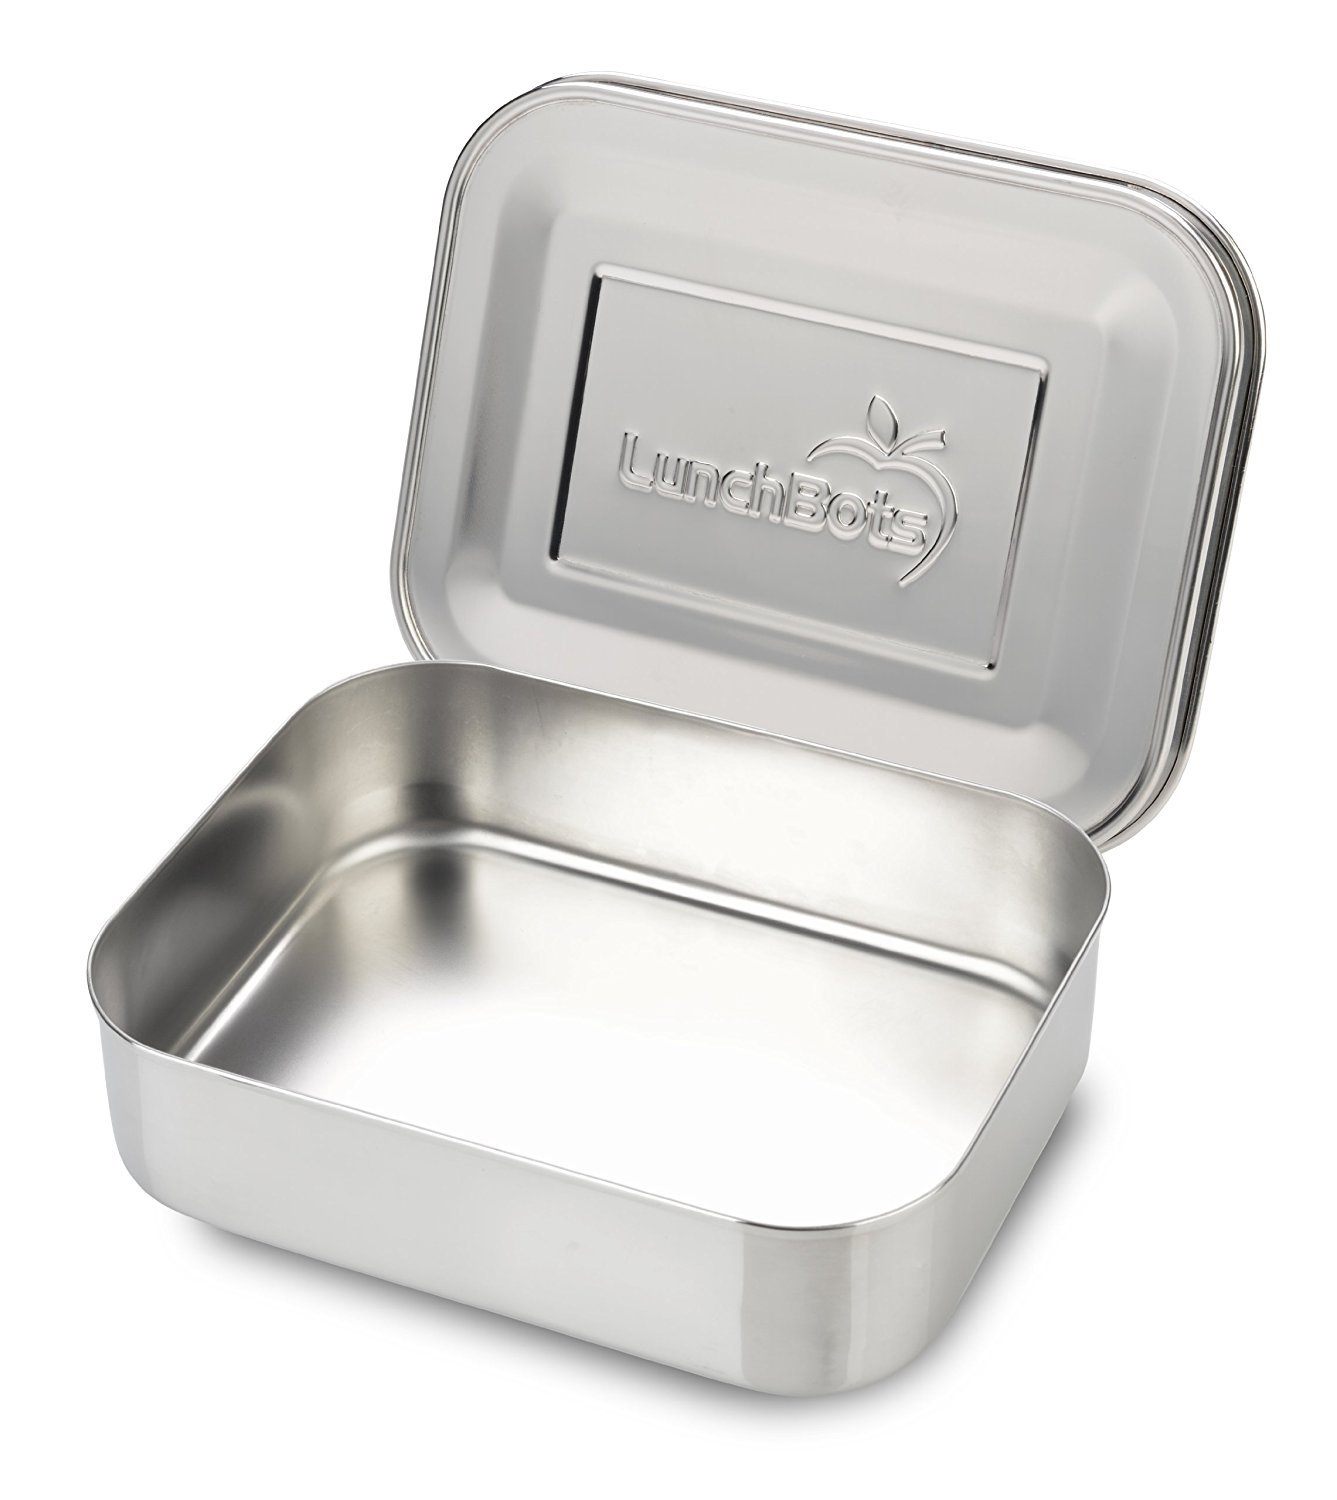 LunchBots Uno Stainless Steel Food Container - Open Design Perfect for Sandwiches, Wraps, Salads or a Small Meal - Eco-Friendly, Dishwasher Safe and BPA-Free - All Stainless